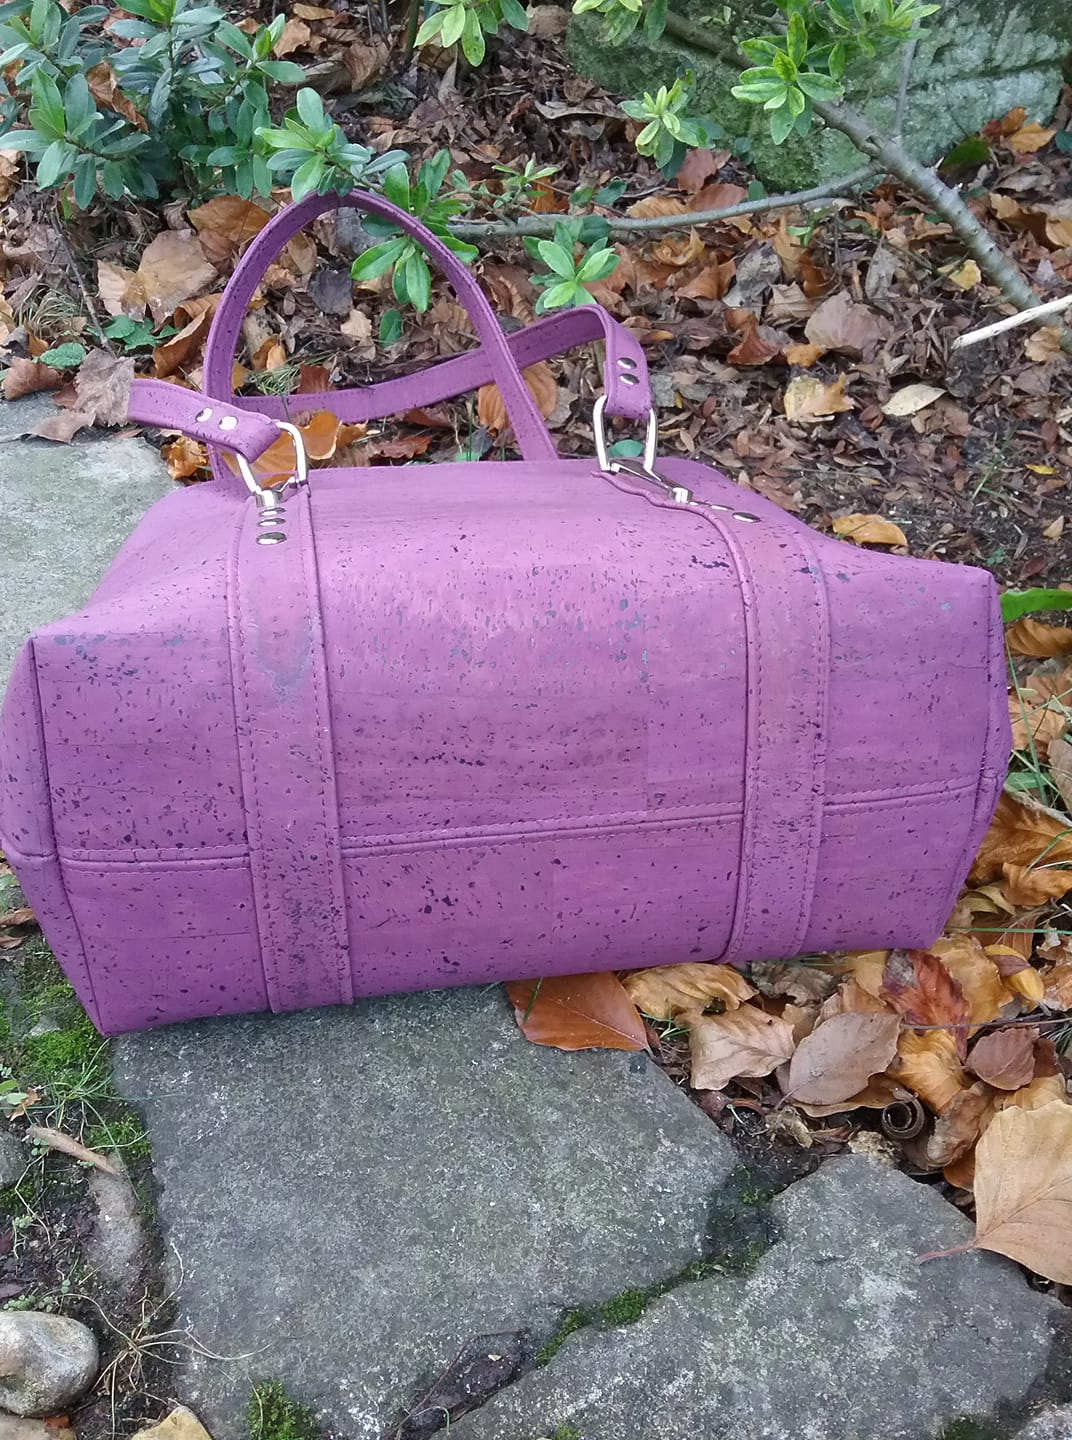 A hacked Jangles Anchor Bag made by Lynn of LBP Bespoke